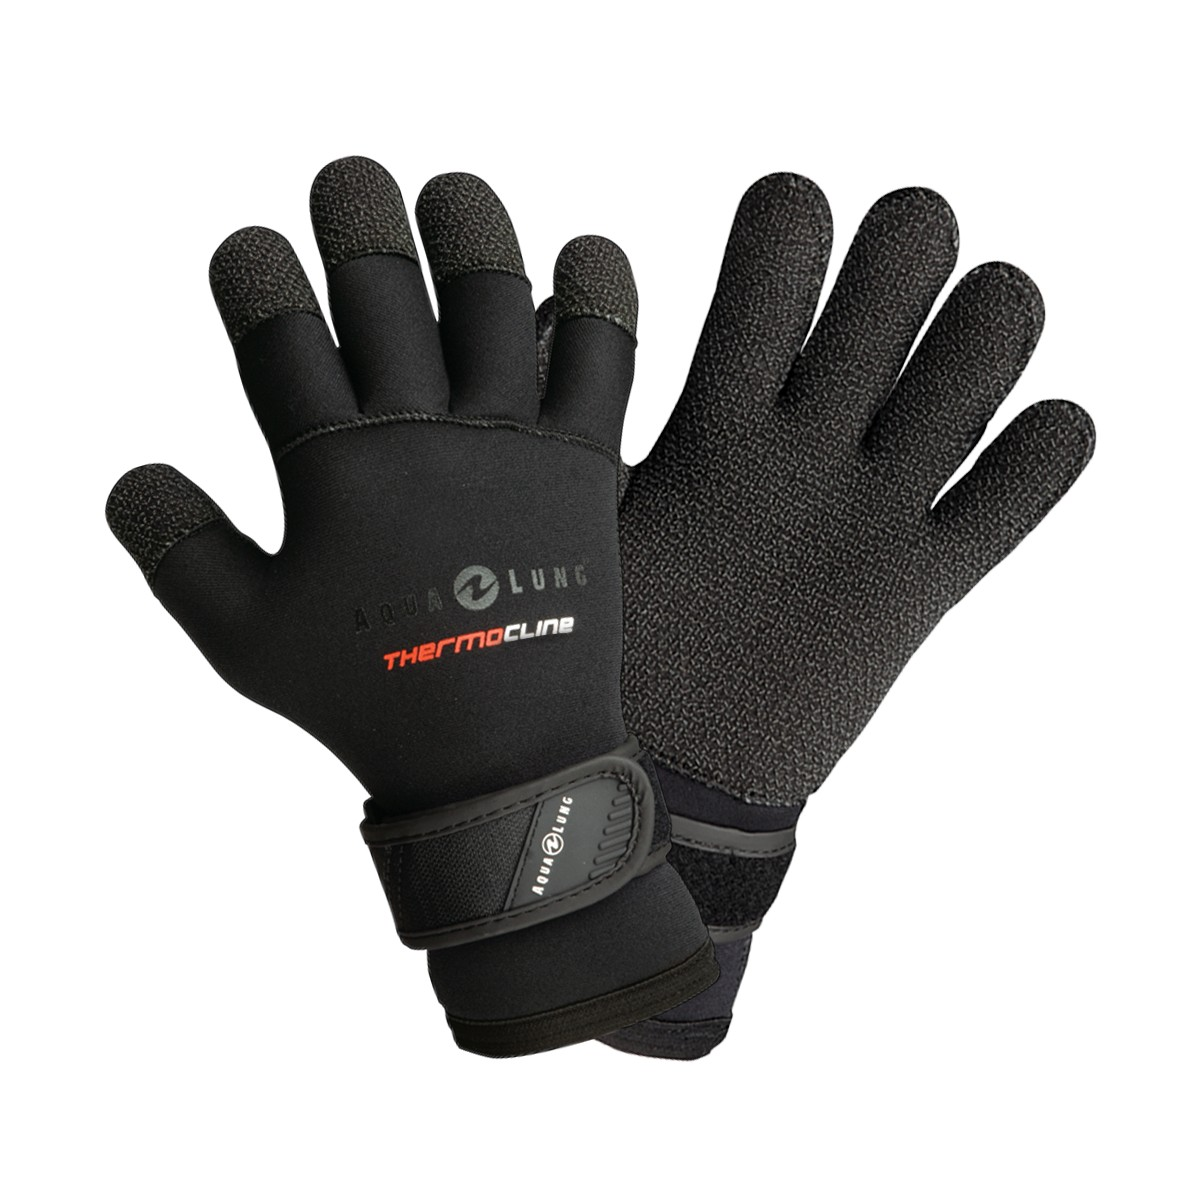 Aqua Lung Men's 5mm Thermocline K Glove